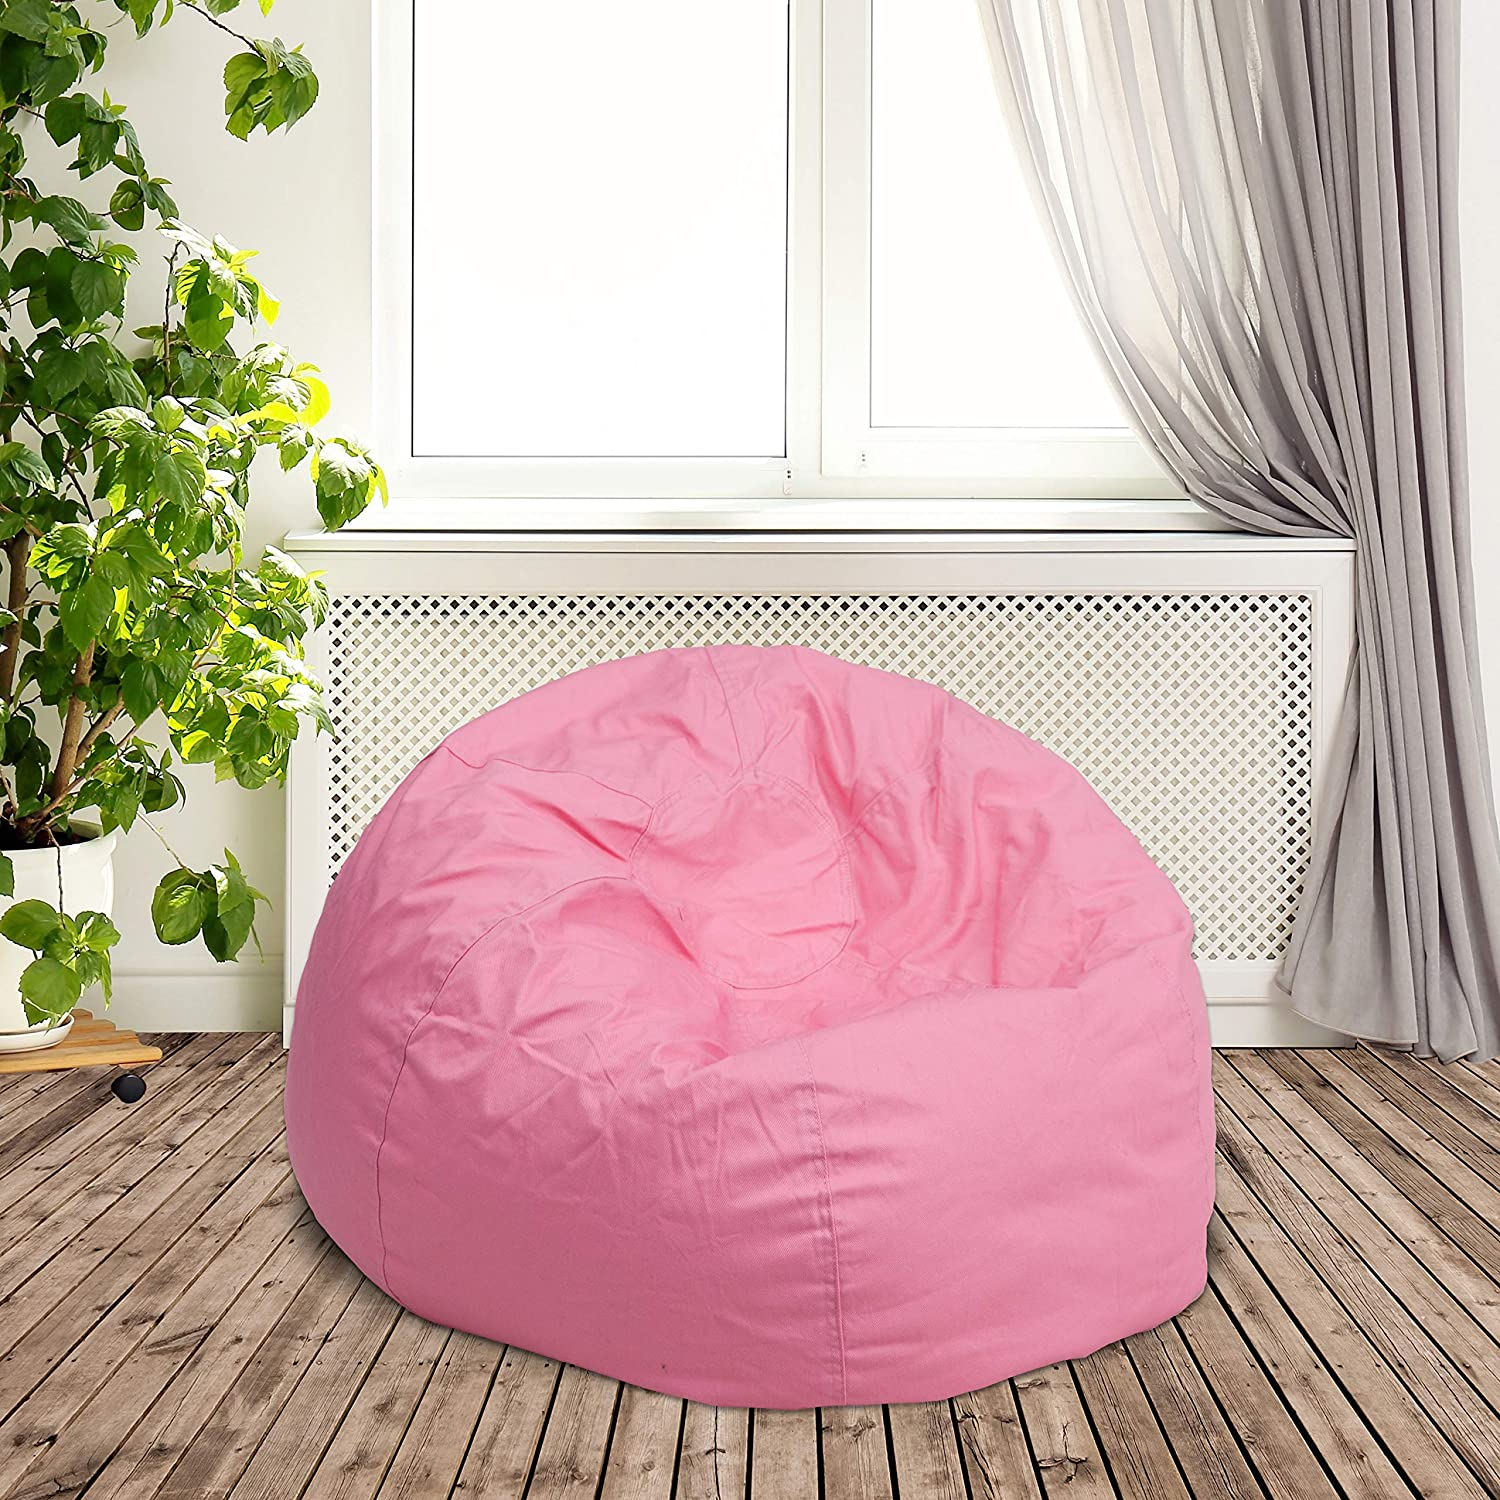 DG-BEAN-SMALL-SOLID-PK-GG Flash Furniture Small Solid Light Pink Kids Bean Bag Chair Renewed